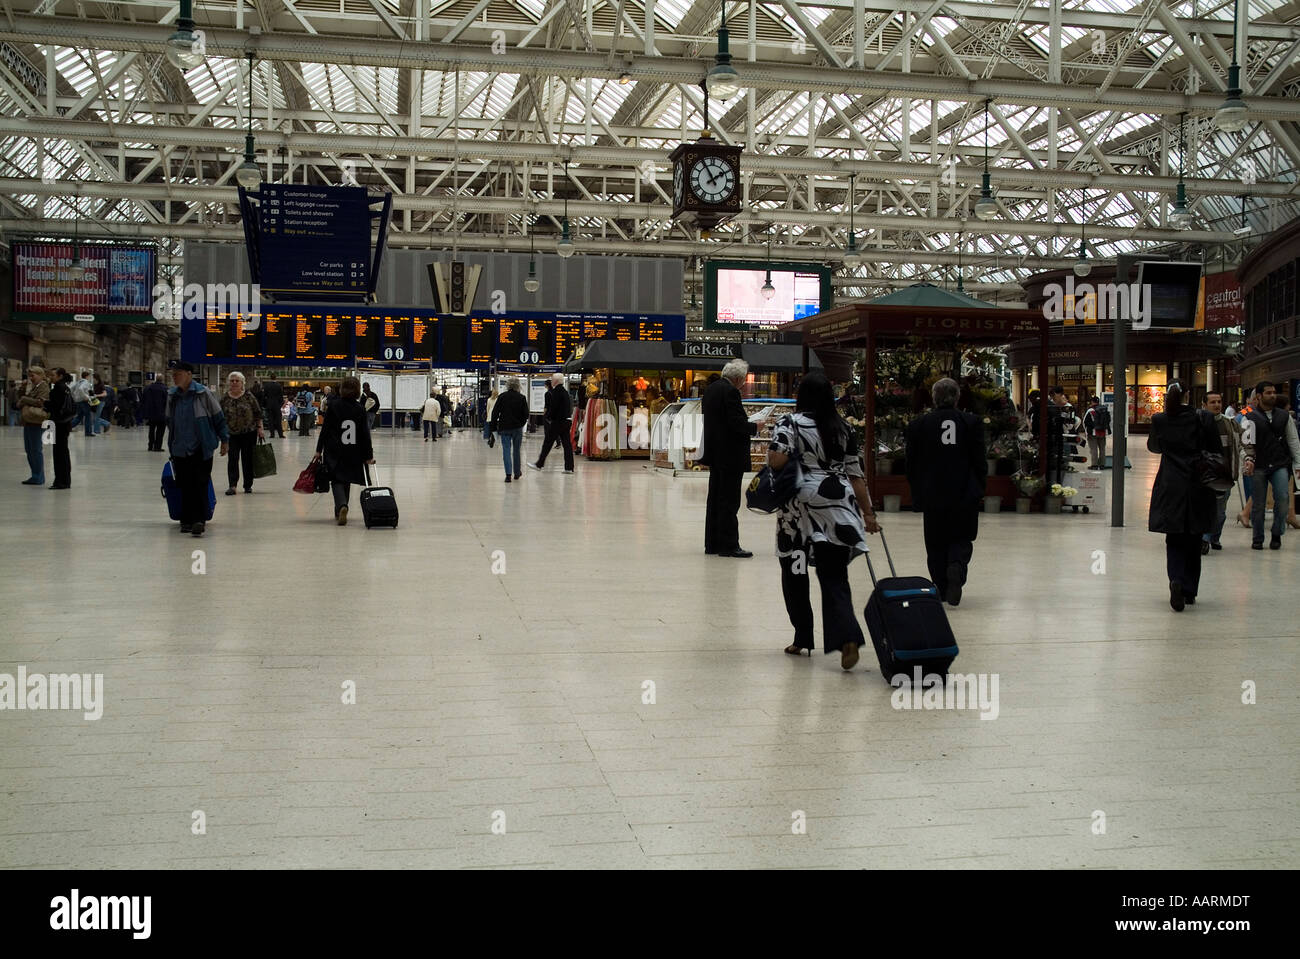 dh  CENTRAL STATION GLASGOW Passengers arriving with suitcases at train timetable board railway travel - Stock Image